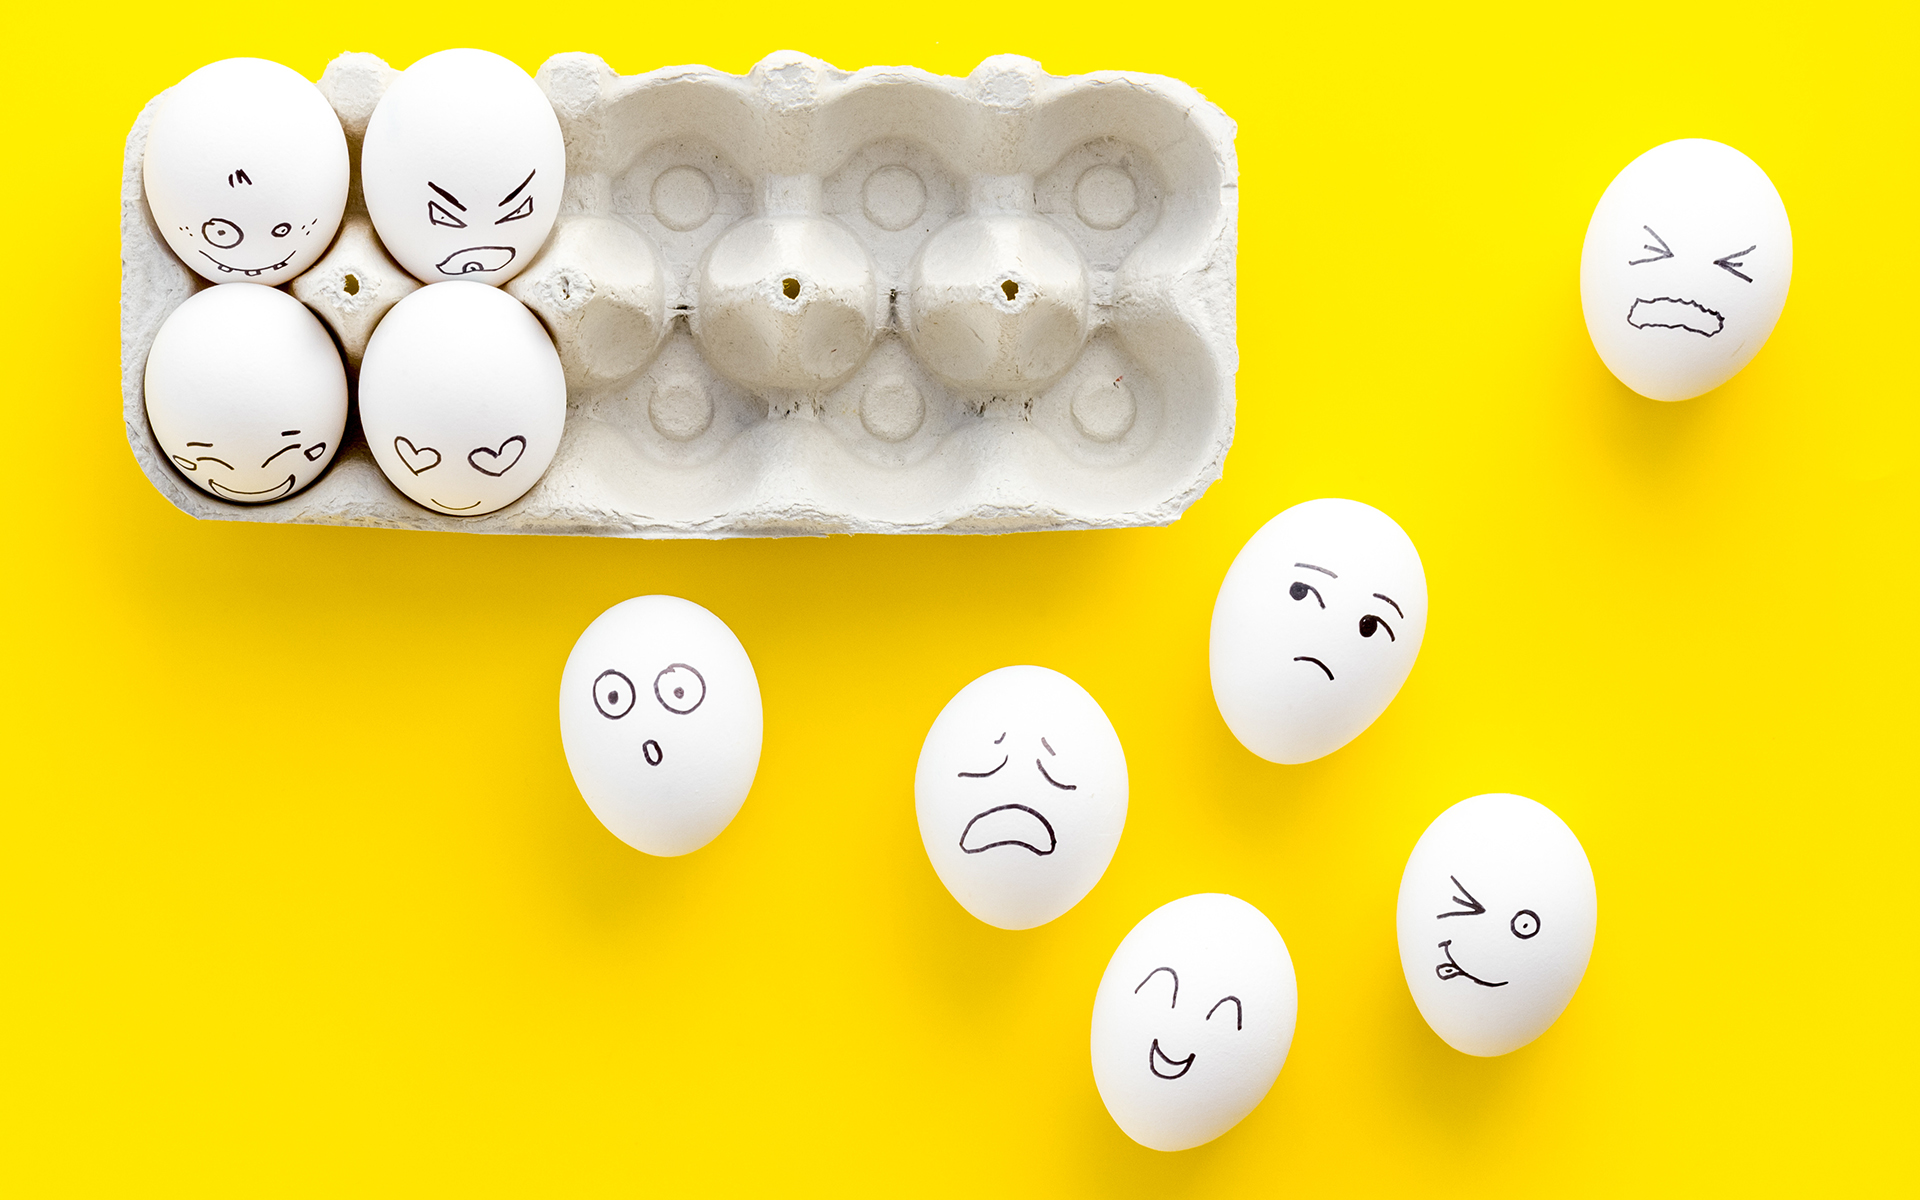 Emotions in communication at social media. Faces drawn on eggs. Yellow background top view